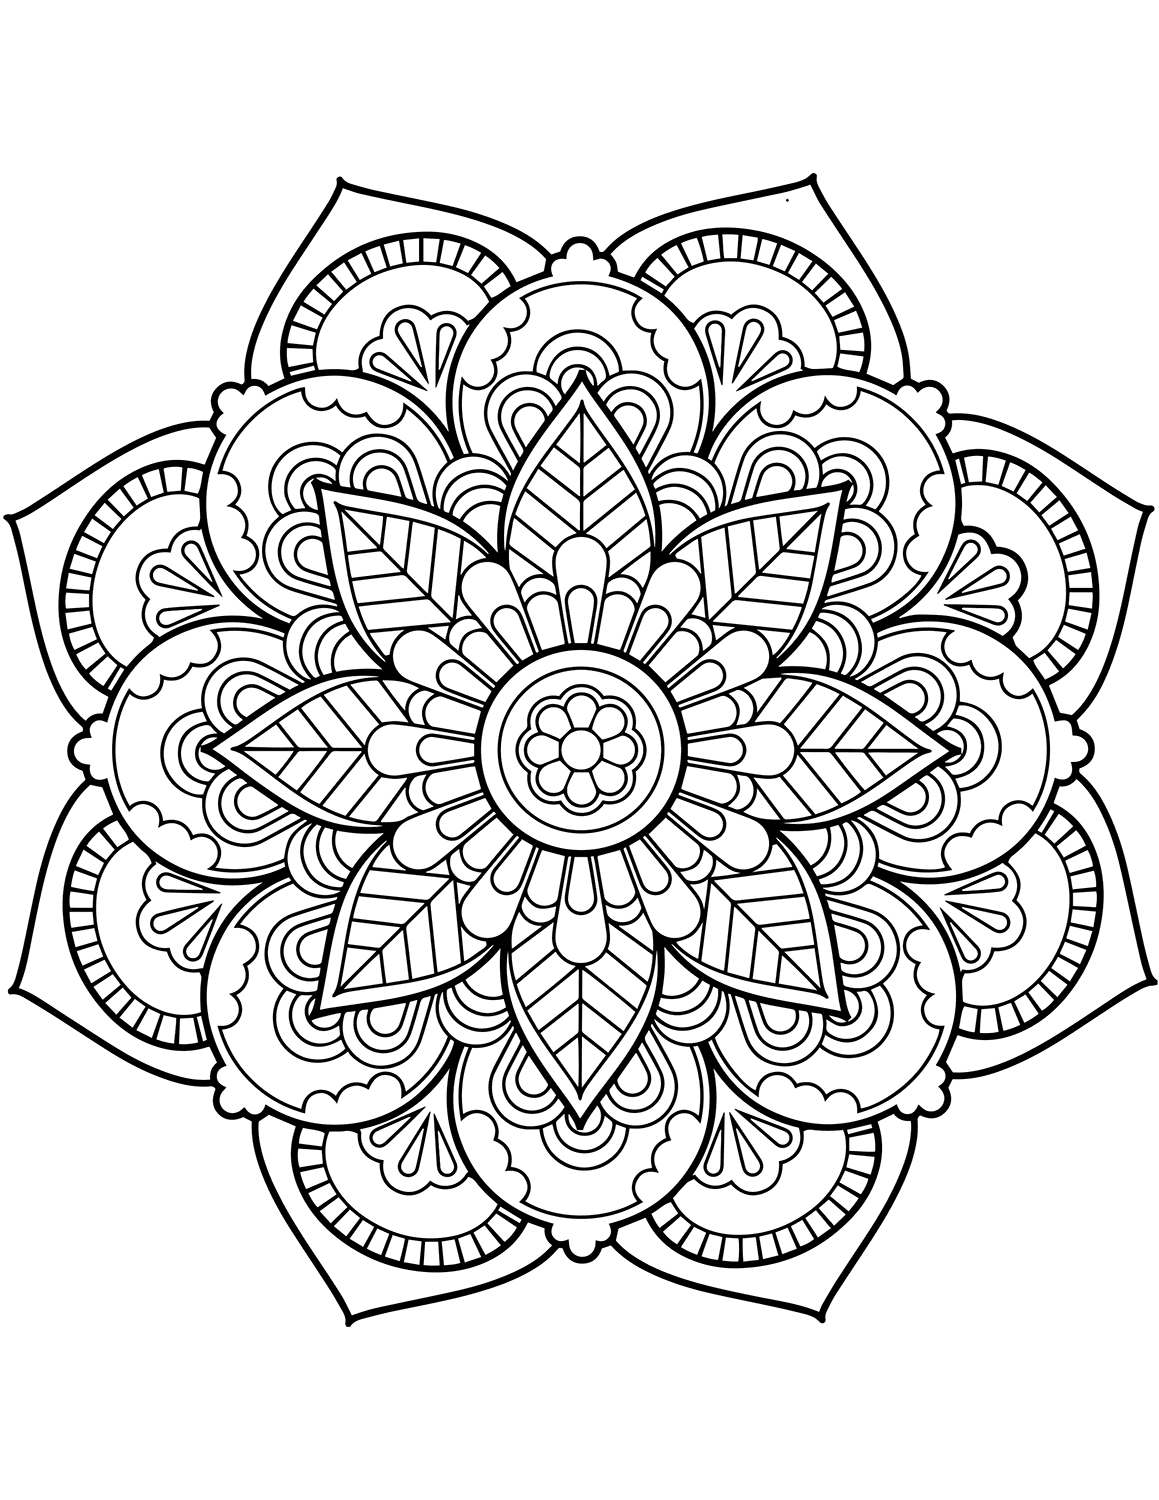 flower coloring patterns flower coloring pages part 3 patterns coloring flower